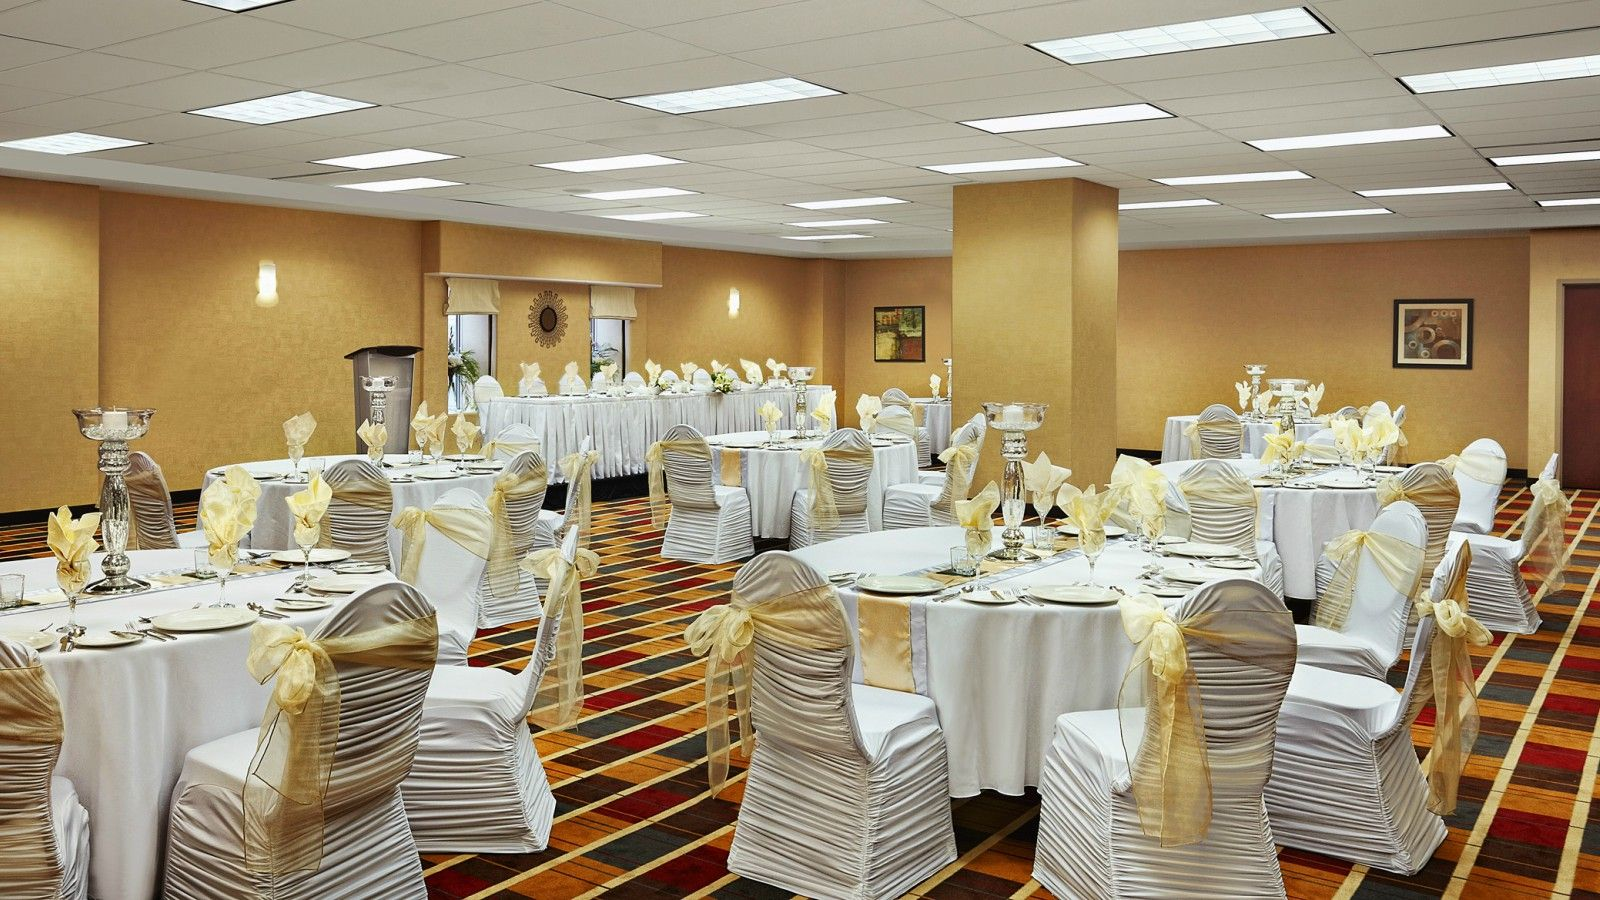 Wedding Venues Halifax - Banquet